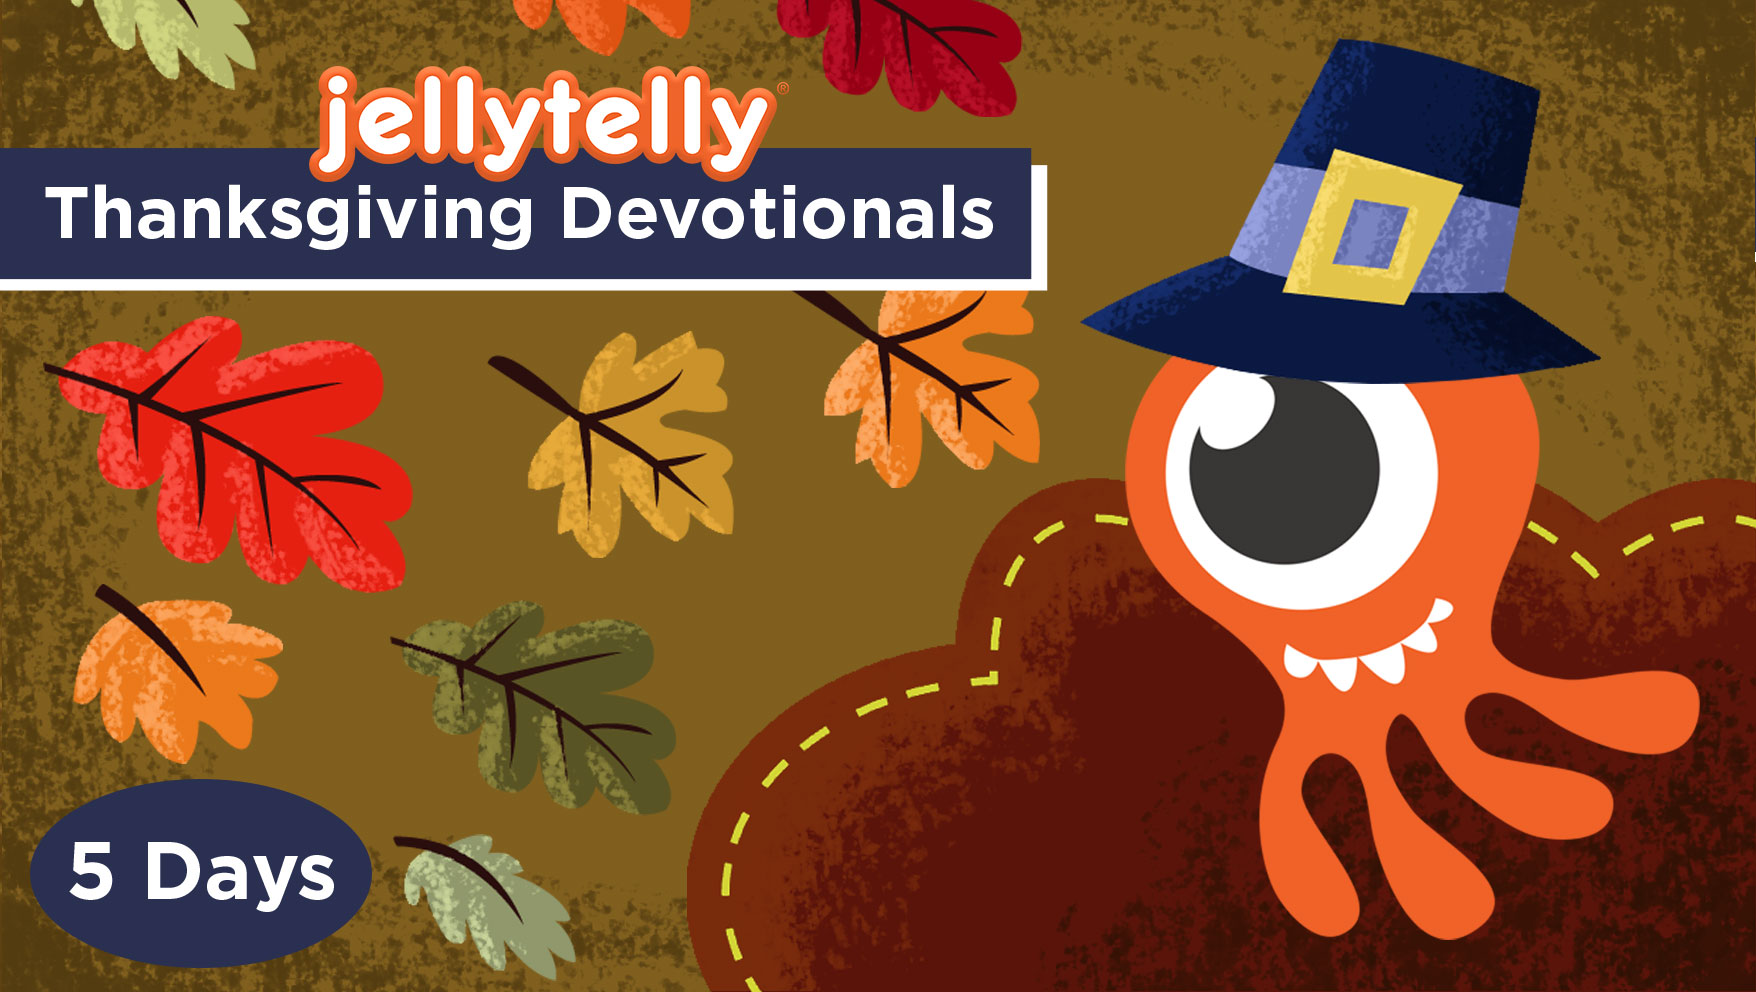 Thanksgiving Family Devotions from JellyTelly